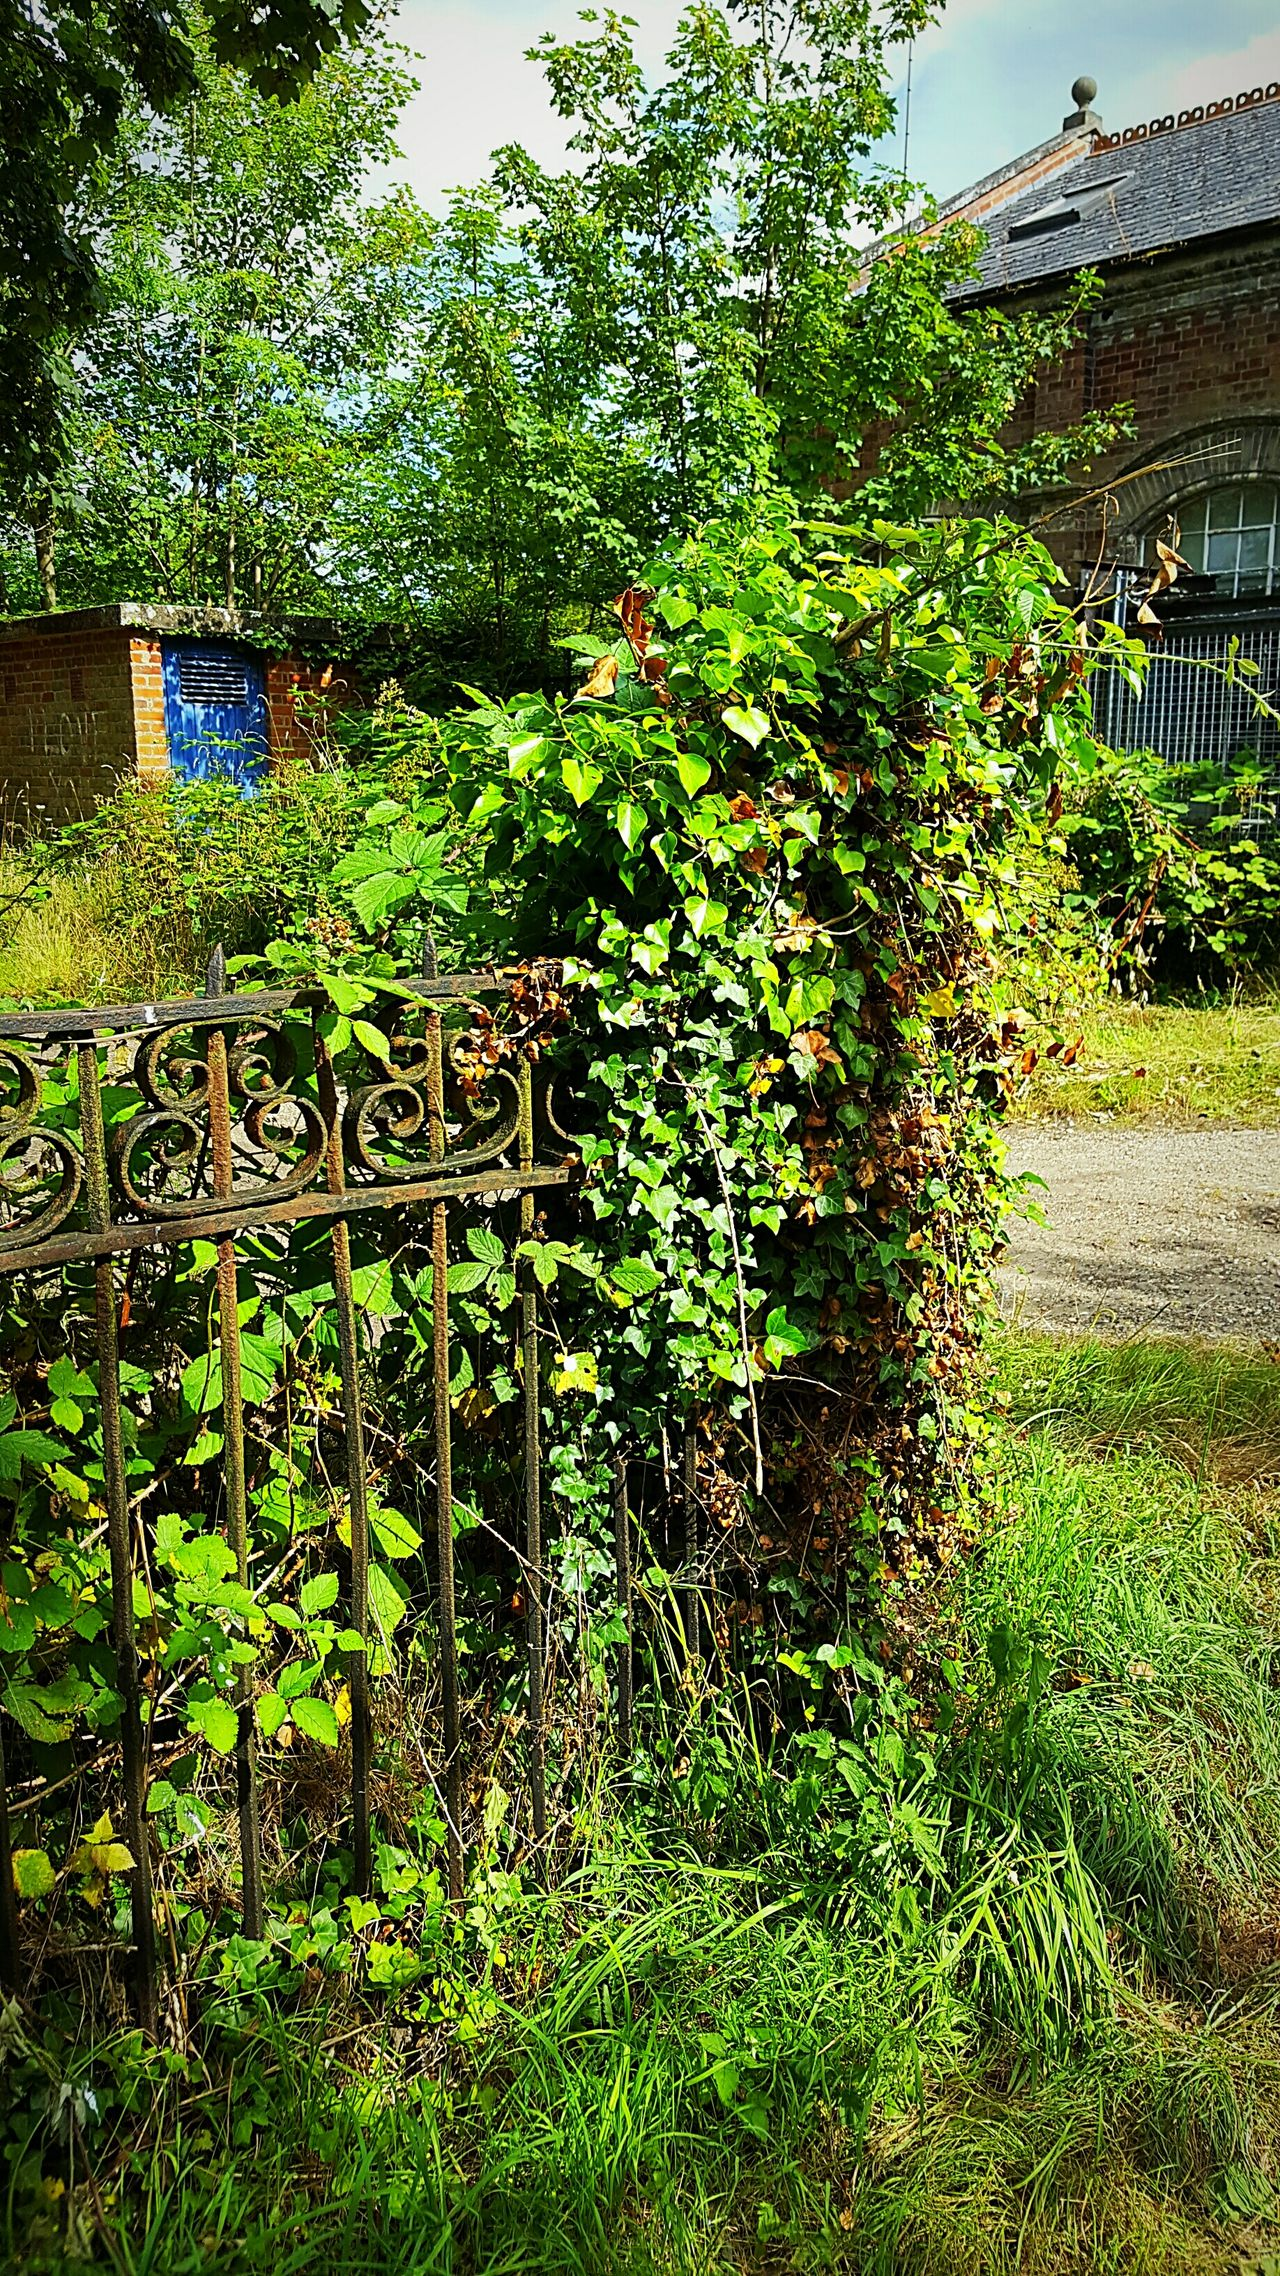 Wrought Iron Ivy Gate Victorian Victorian Gate Plant Growth Green Color Fence Built Structure Architecture Building Exterior Nature Growing Day Freshness Lawn Sky Overgrown Lush Foliage Outdoors Green Tranquility Beauty In Nature Fragility